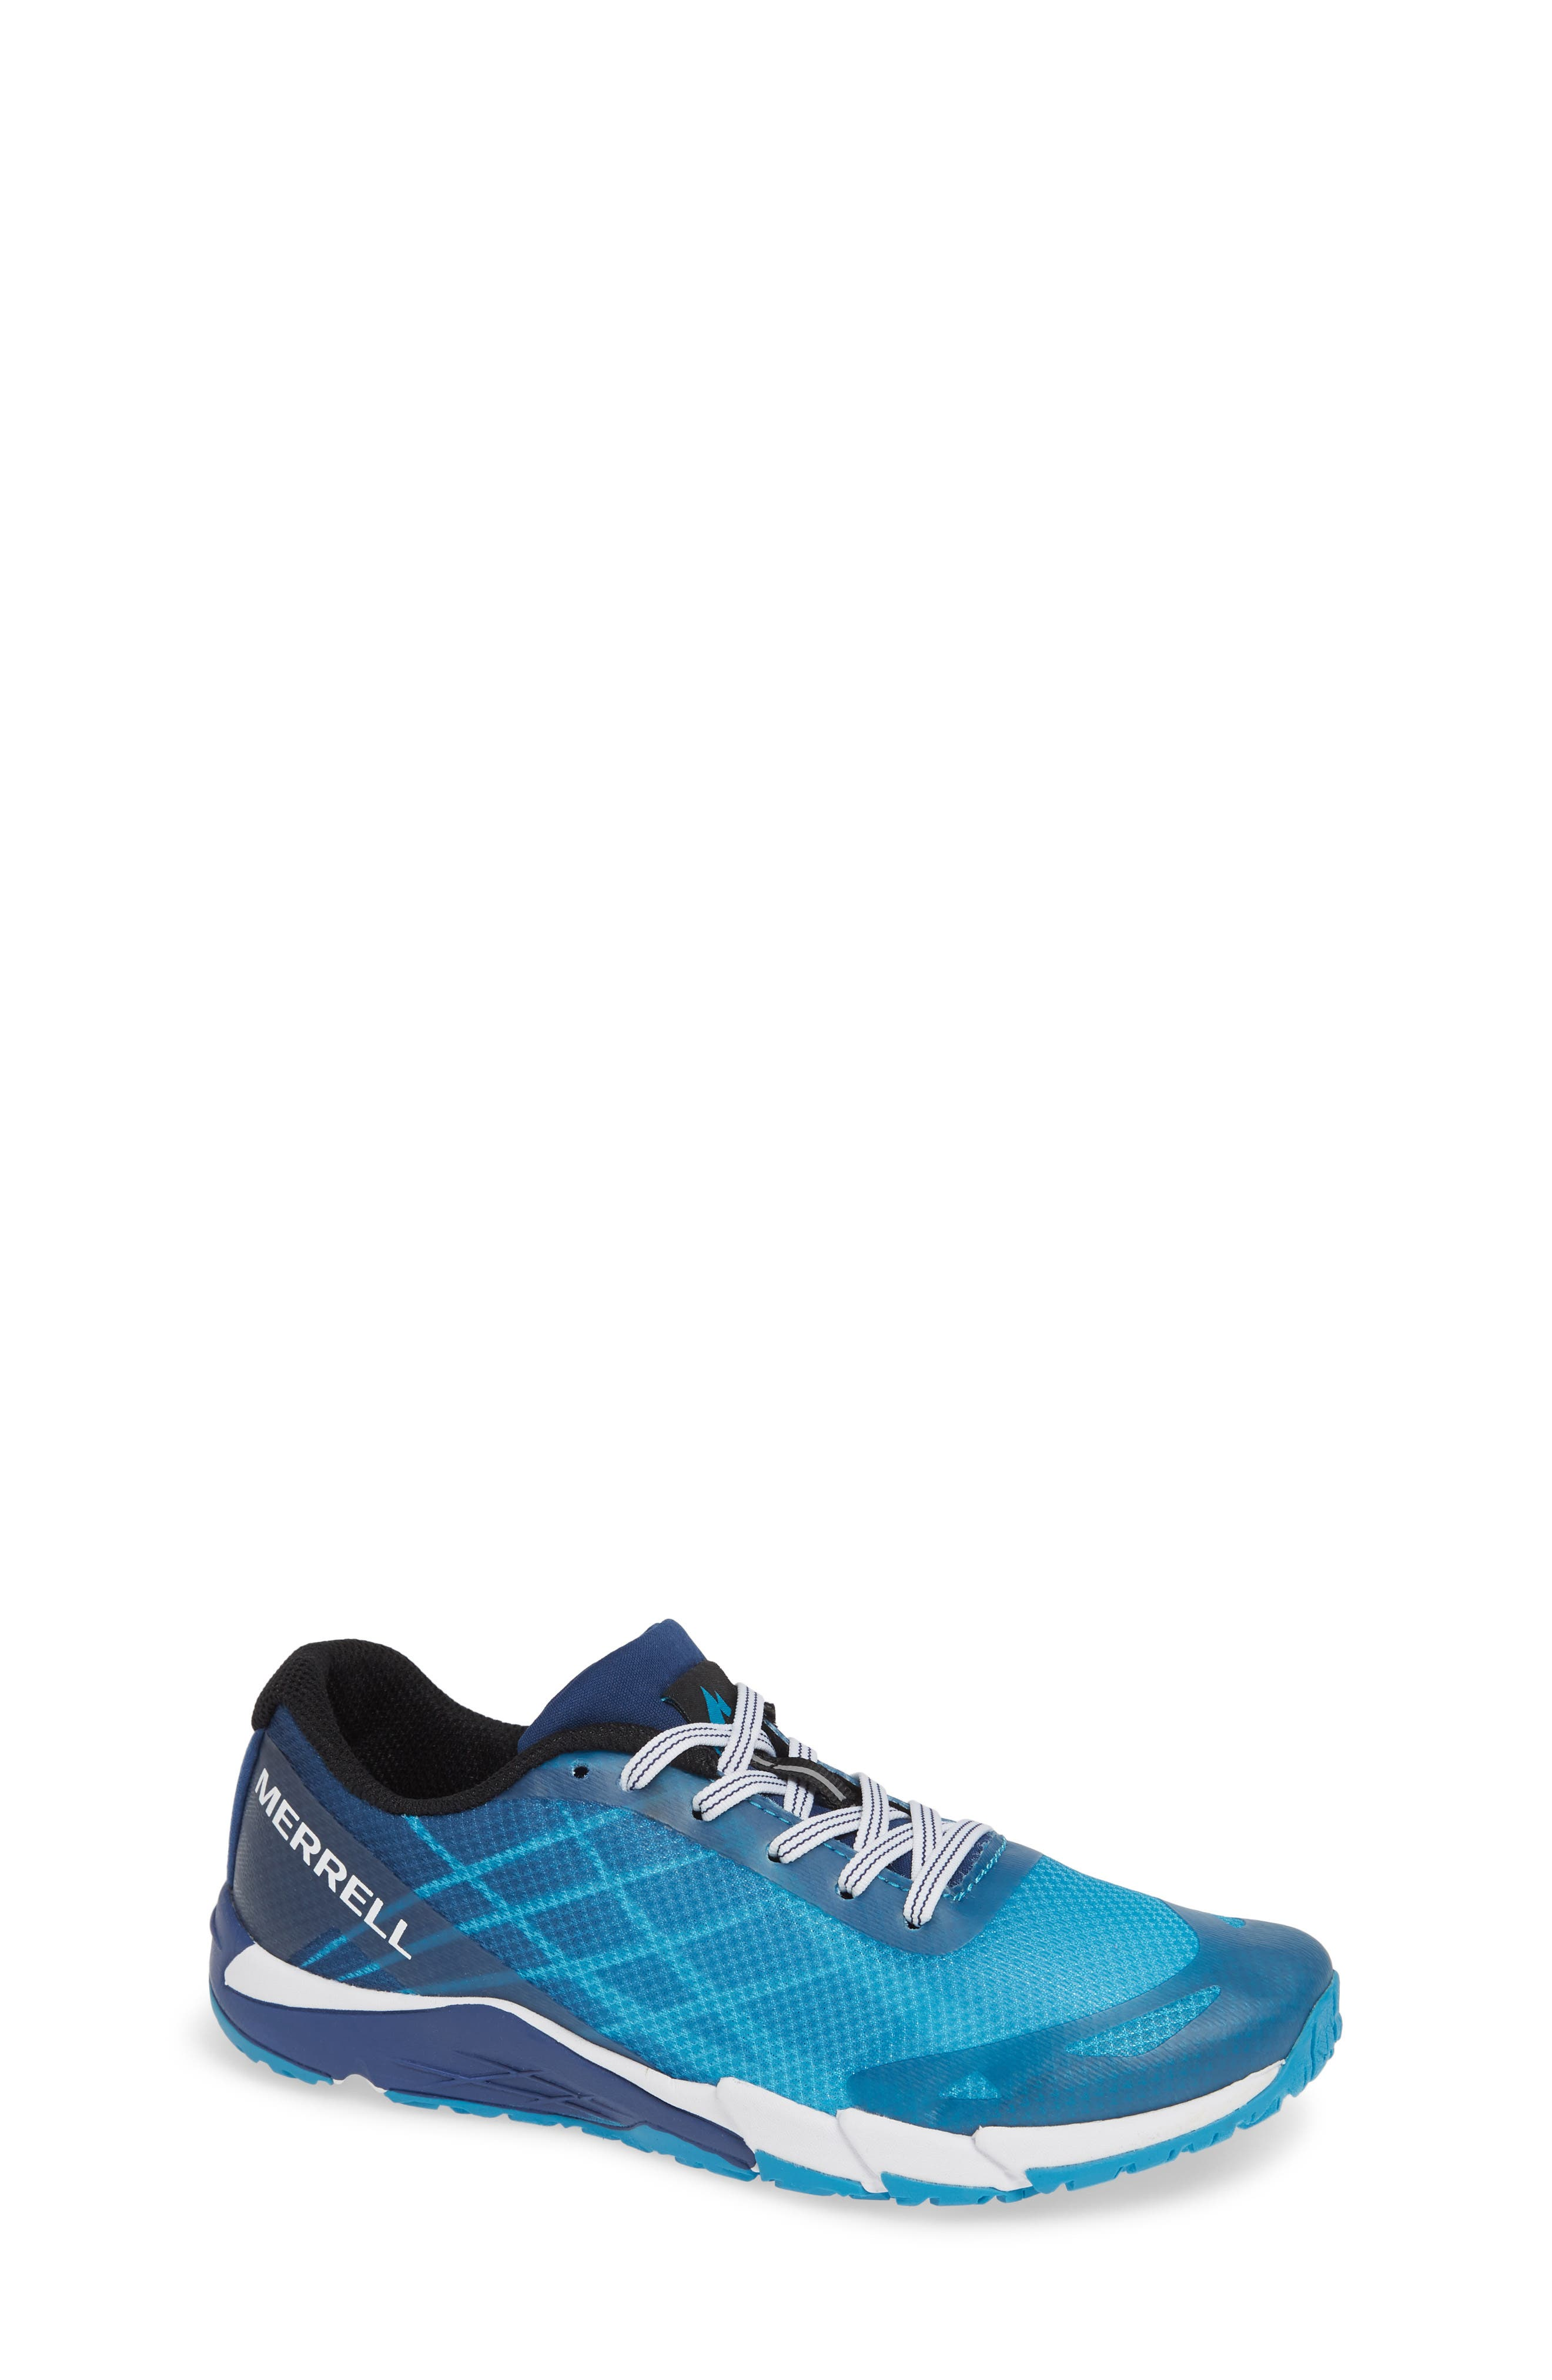 MERRELL, Bare Access Sneaker, Main thumbnail 1, color, BLUE SYNTHETIC